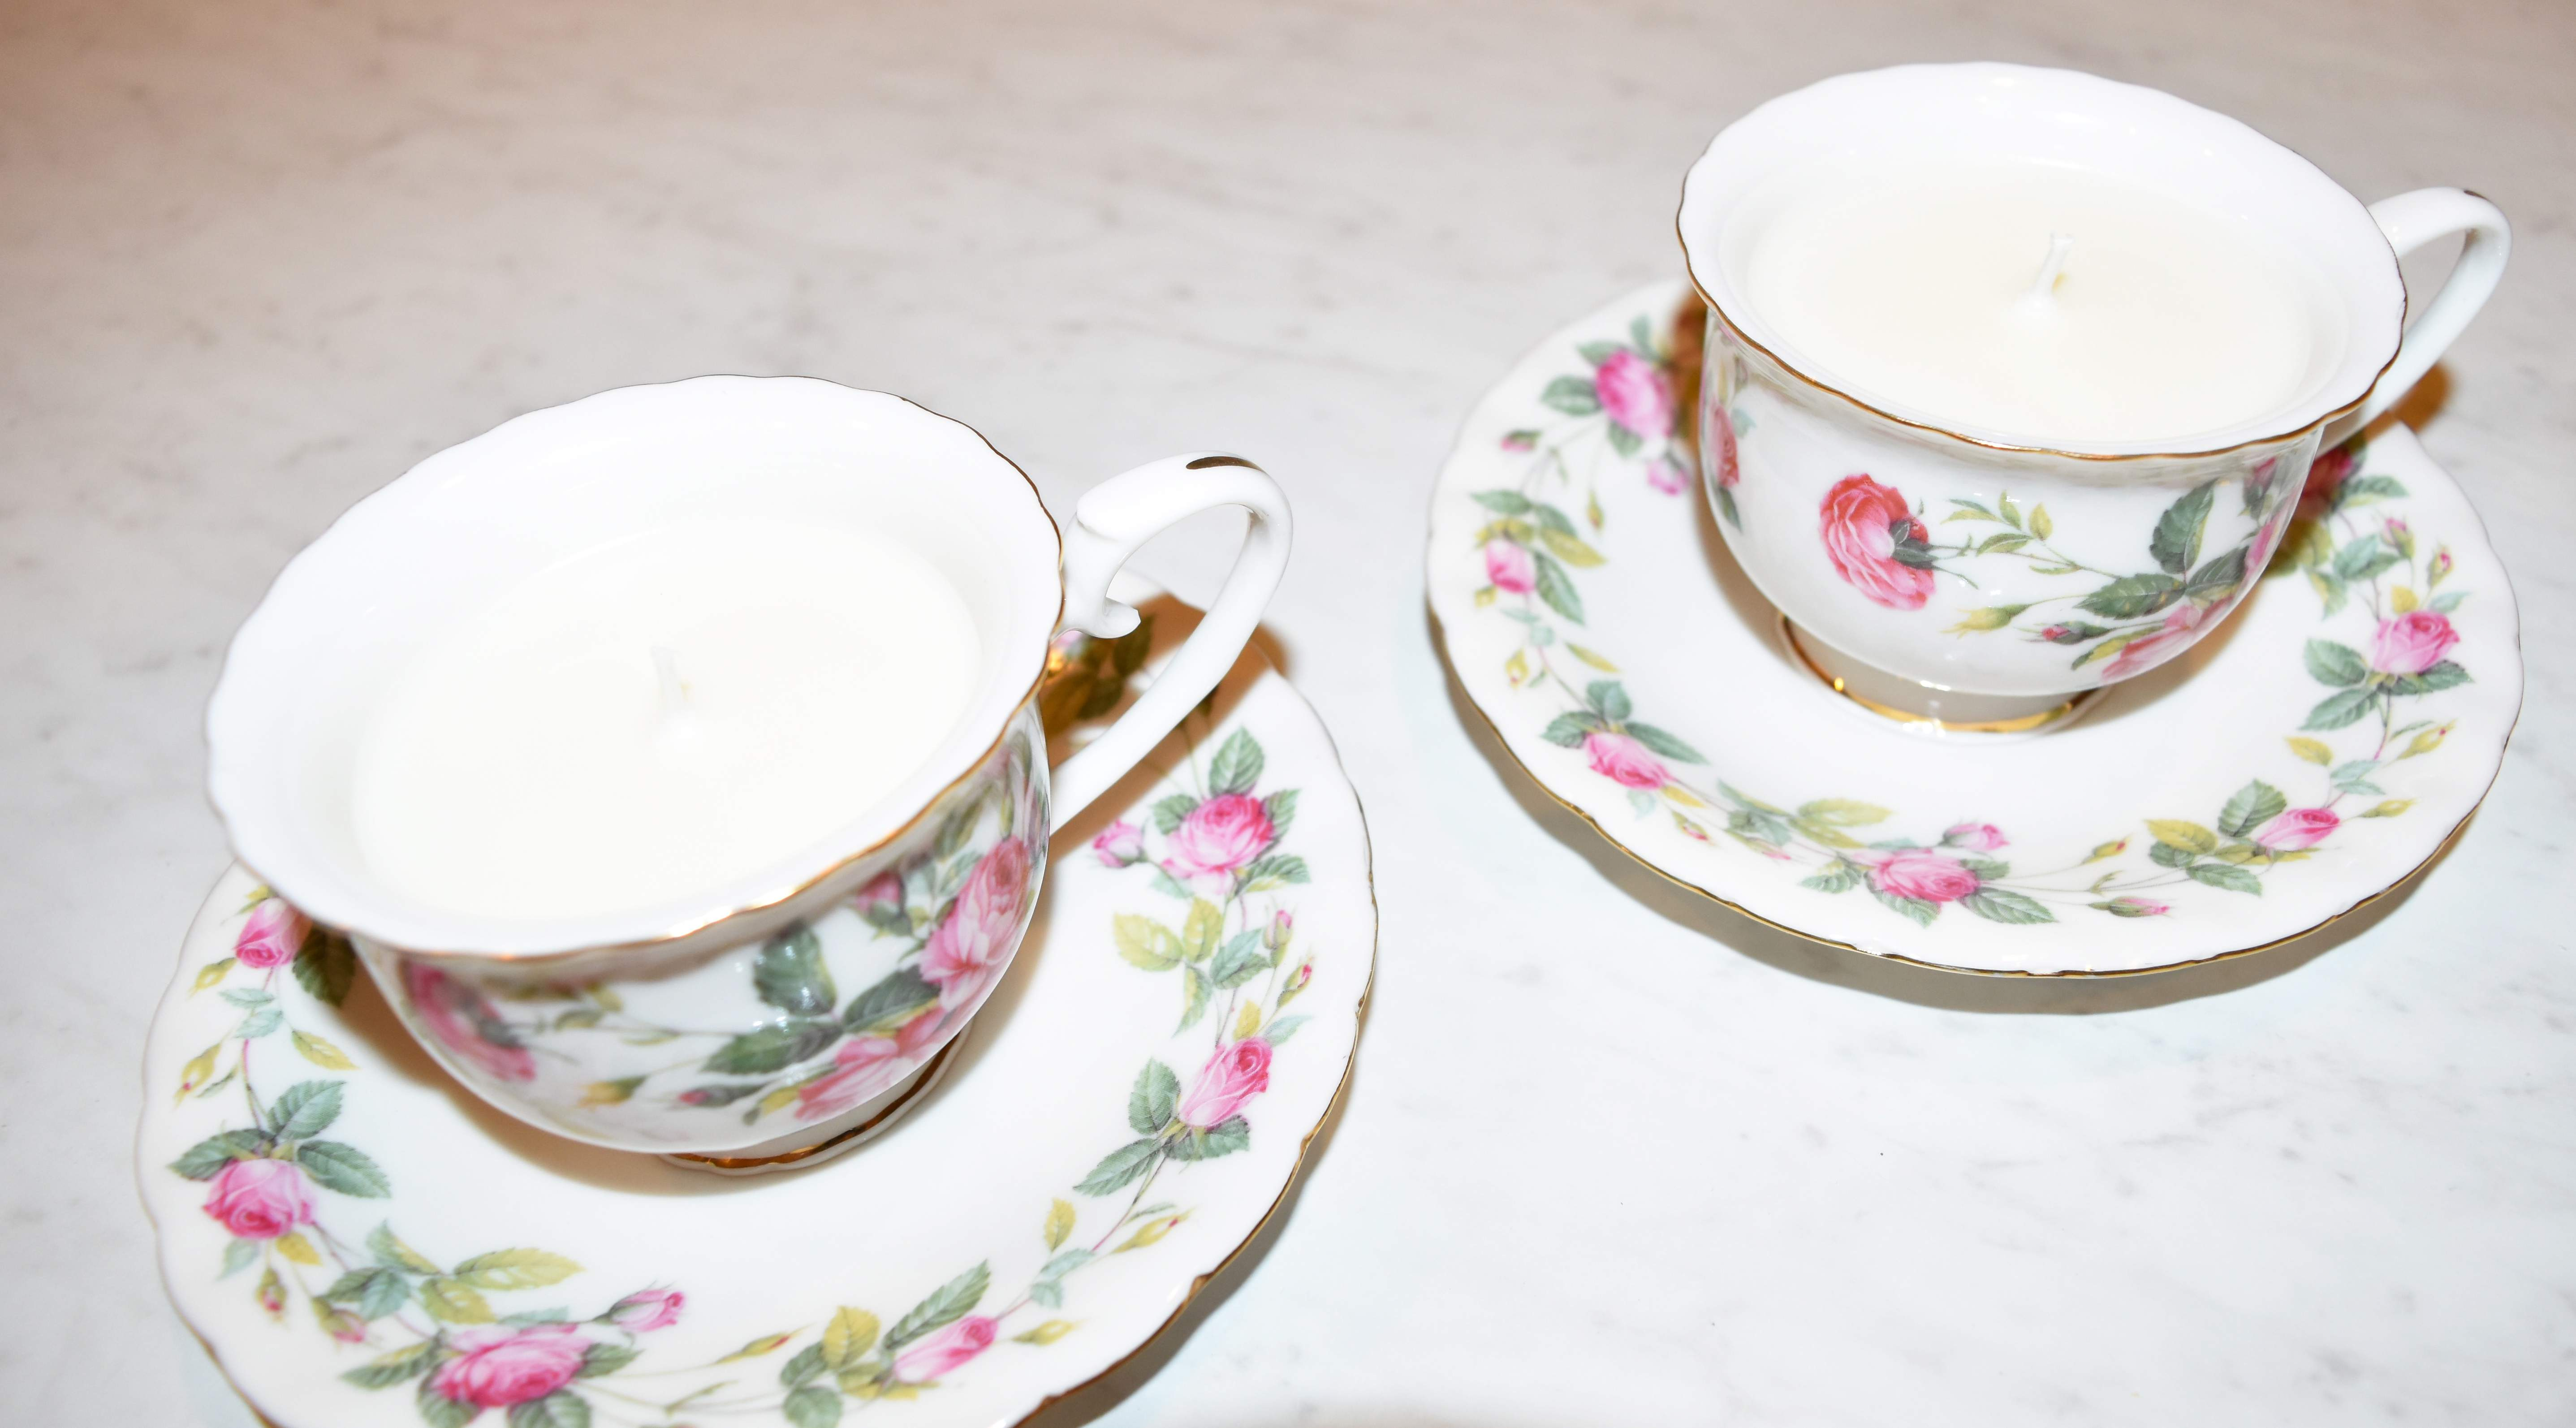 DIY Teacup Candles 26